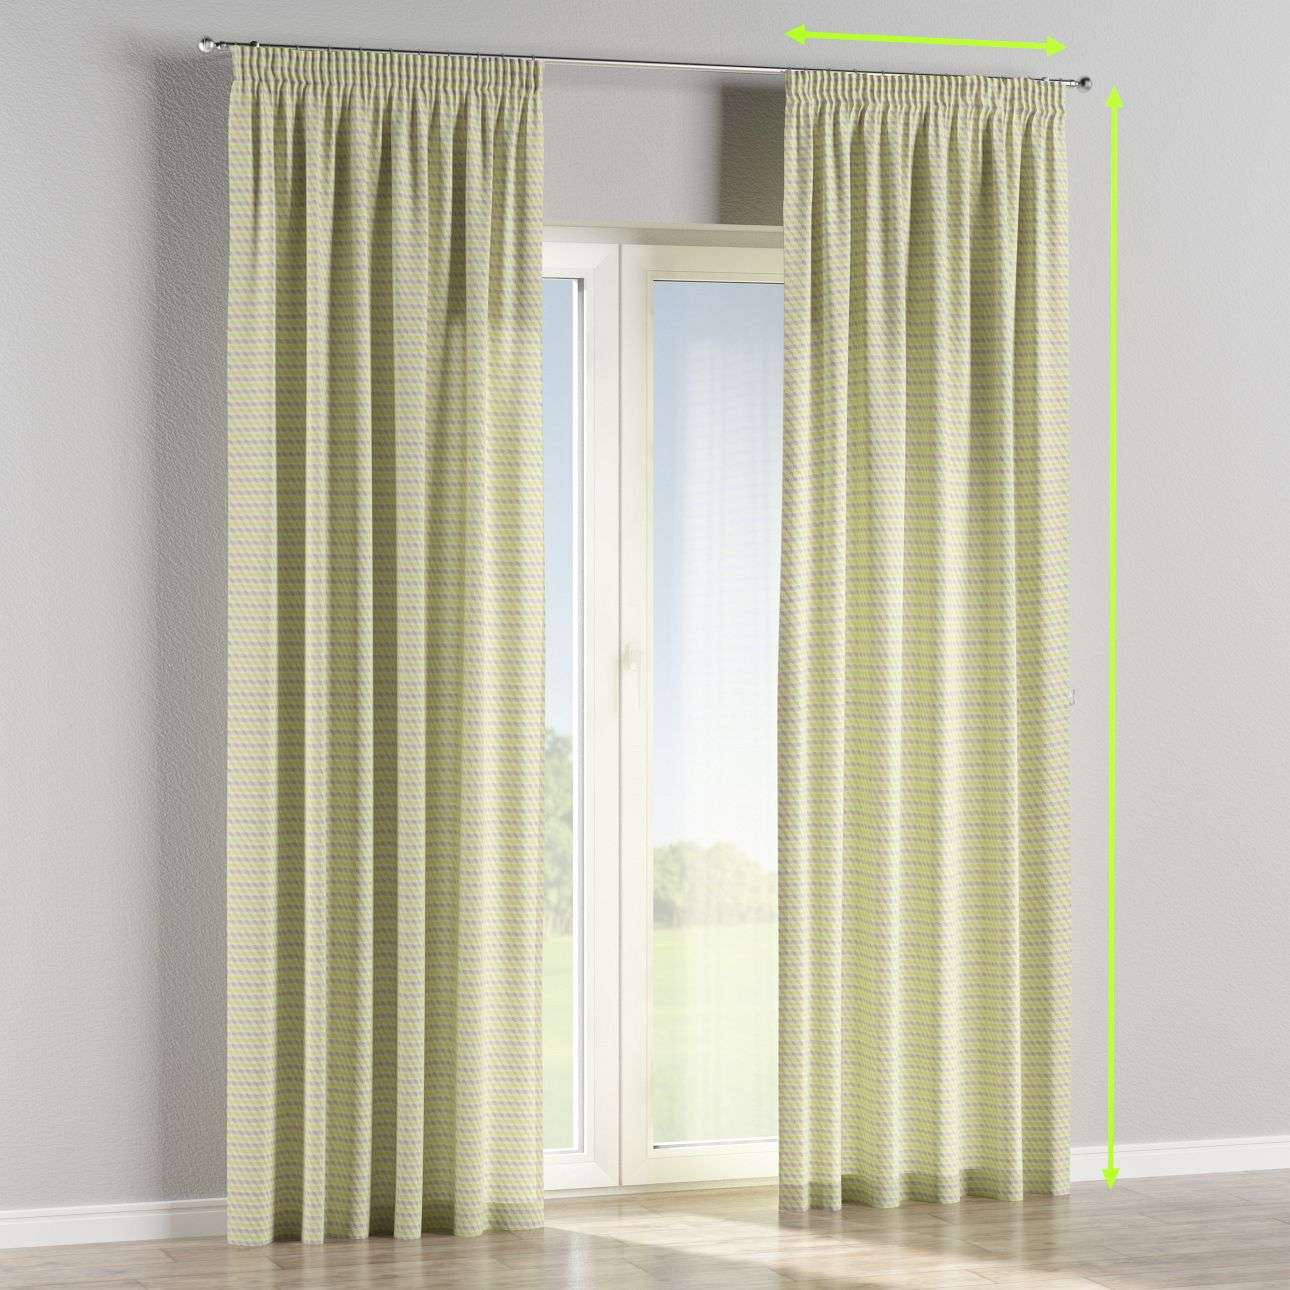 Pencil pleat curtains in collection Rustica, fabric: 140-36